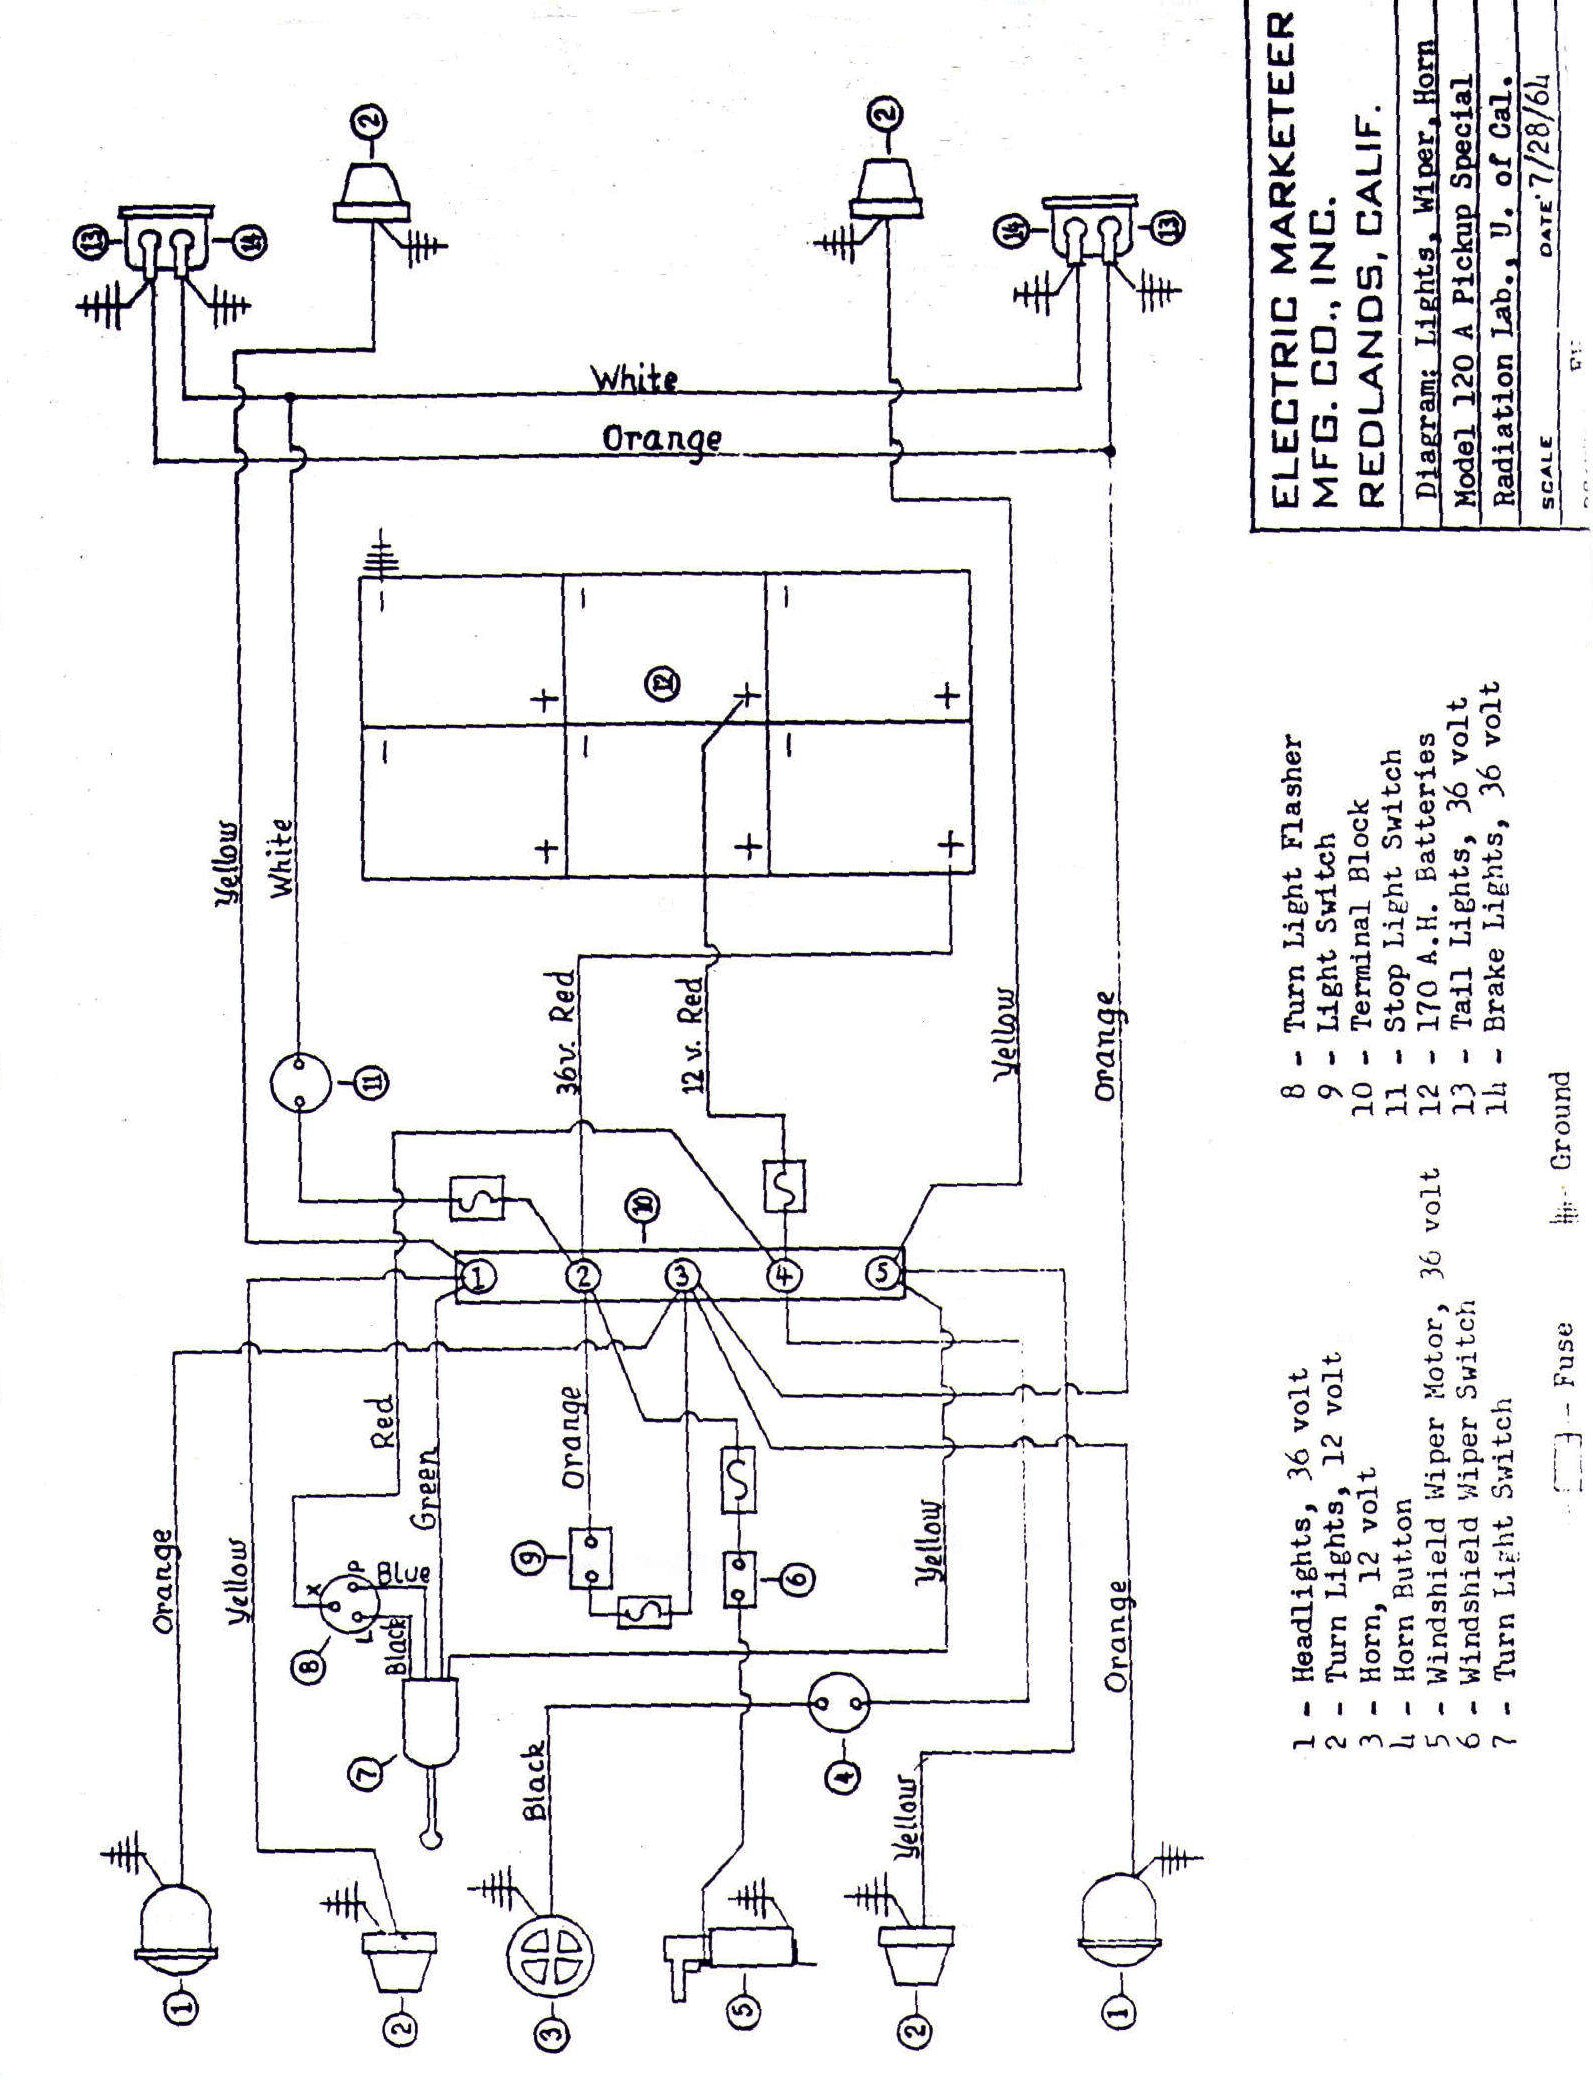 Melex Gas Golf Cart Wiring Diagram: Melex Golf Cart Wiring Diagram -  Dolgular.com